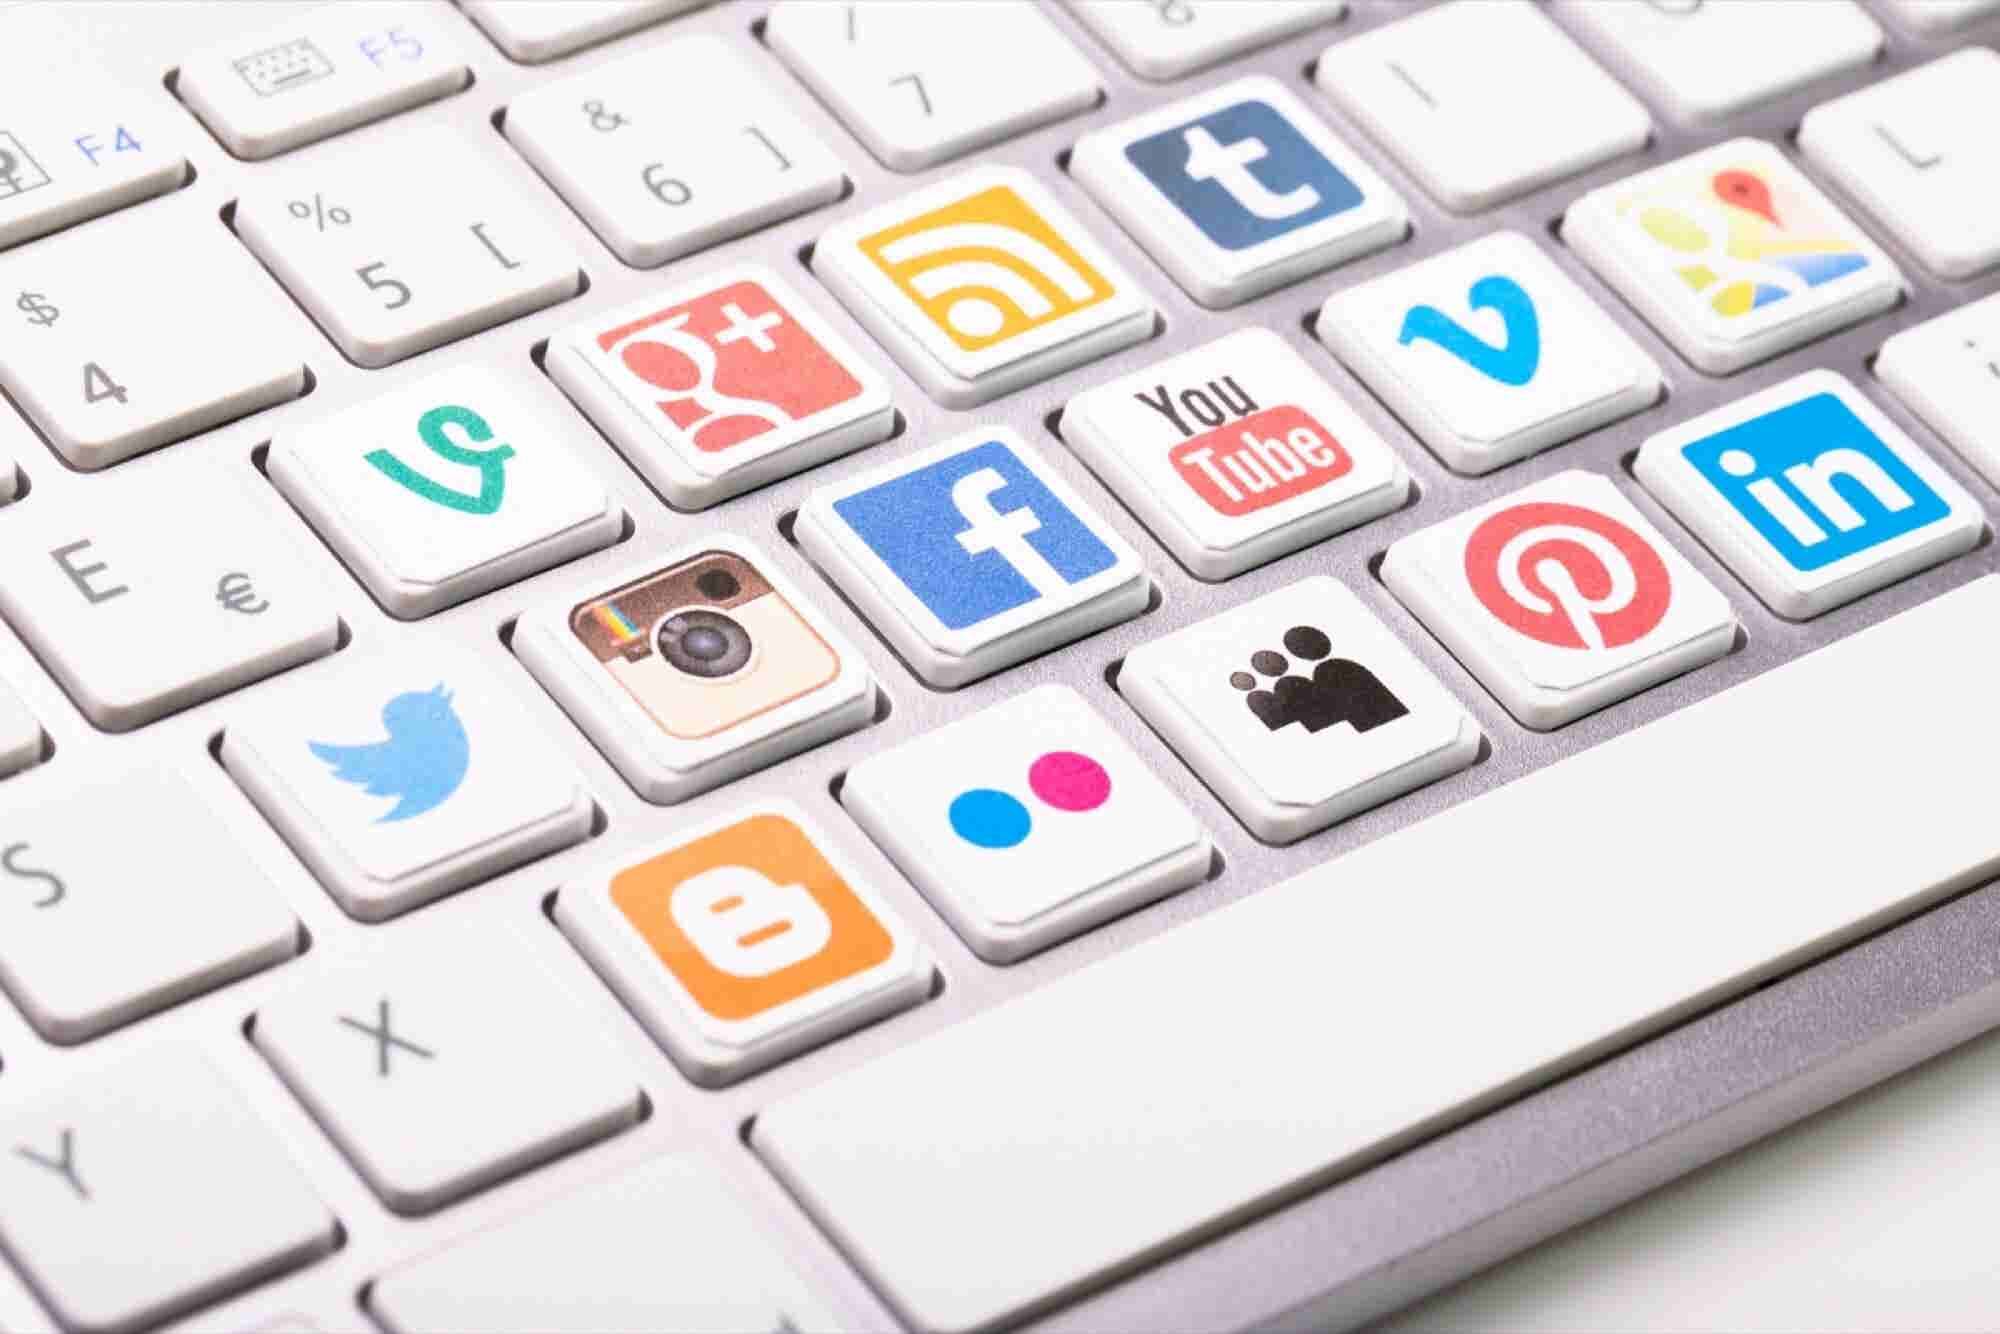 Most APAC Businesses Believe Social Media is Vital to Stay Competitive